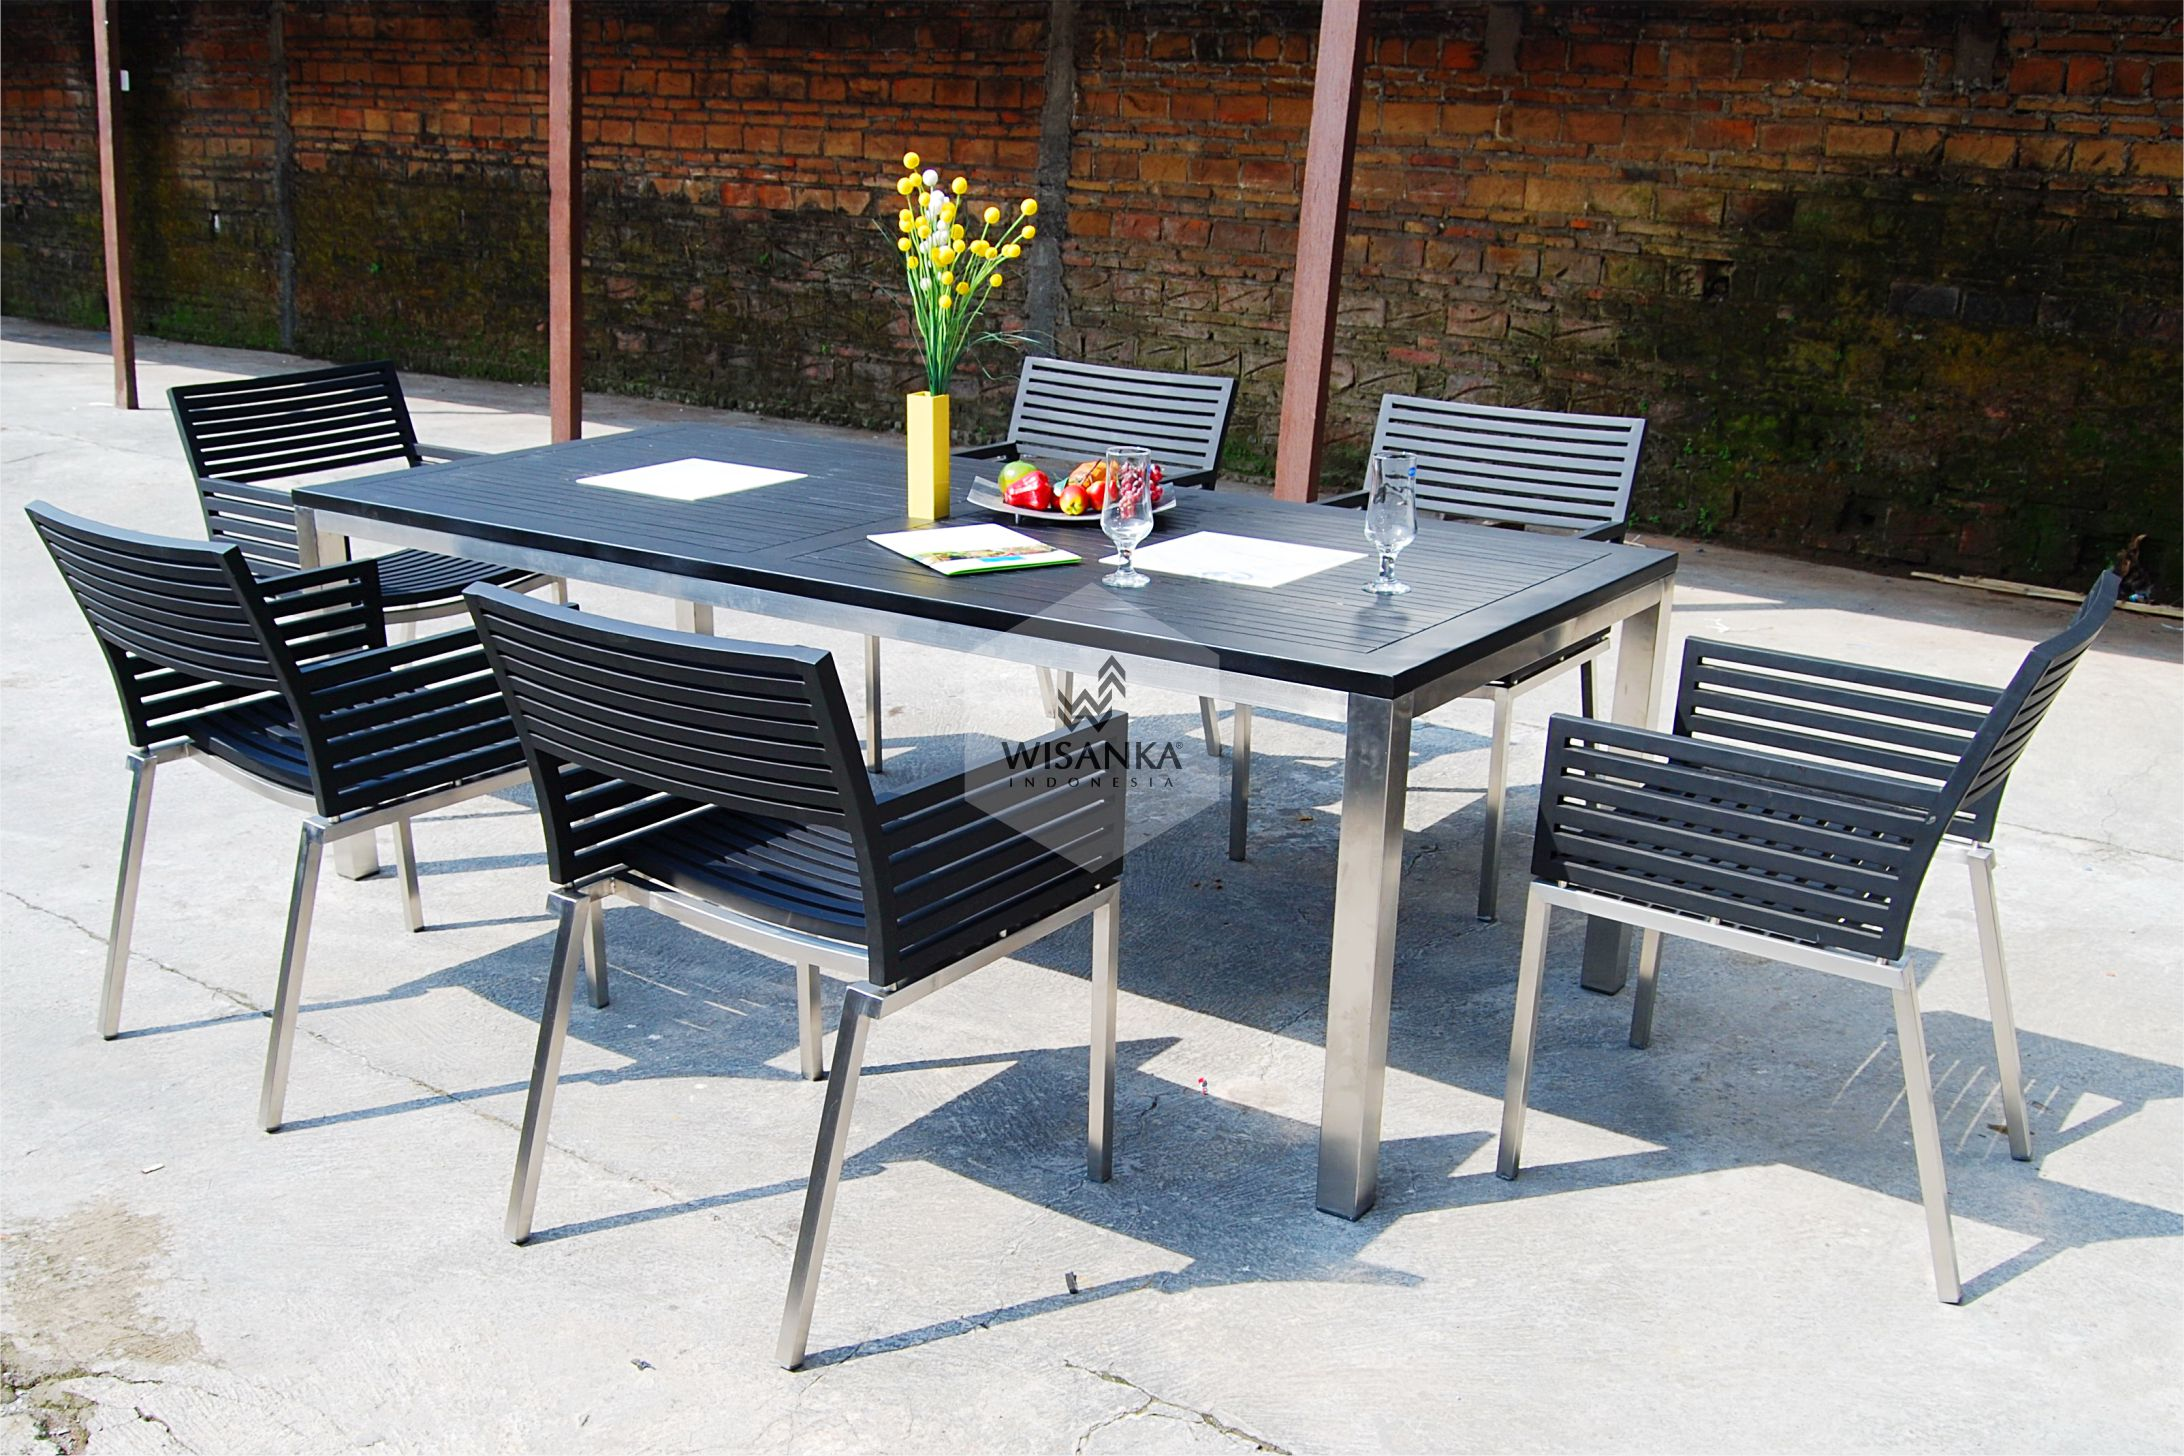 Stainless Steel Terrano Black Dining Set Wisanka Modern Outdoor Furniture